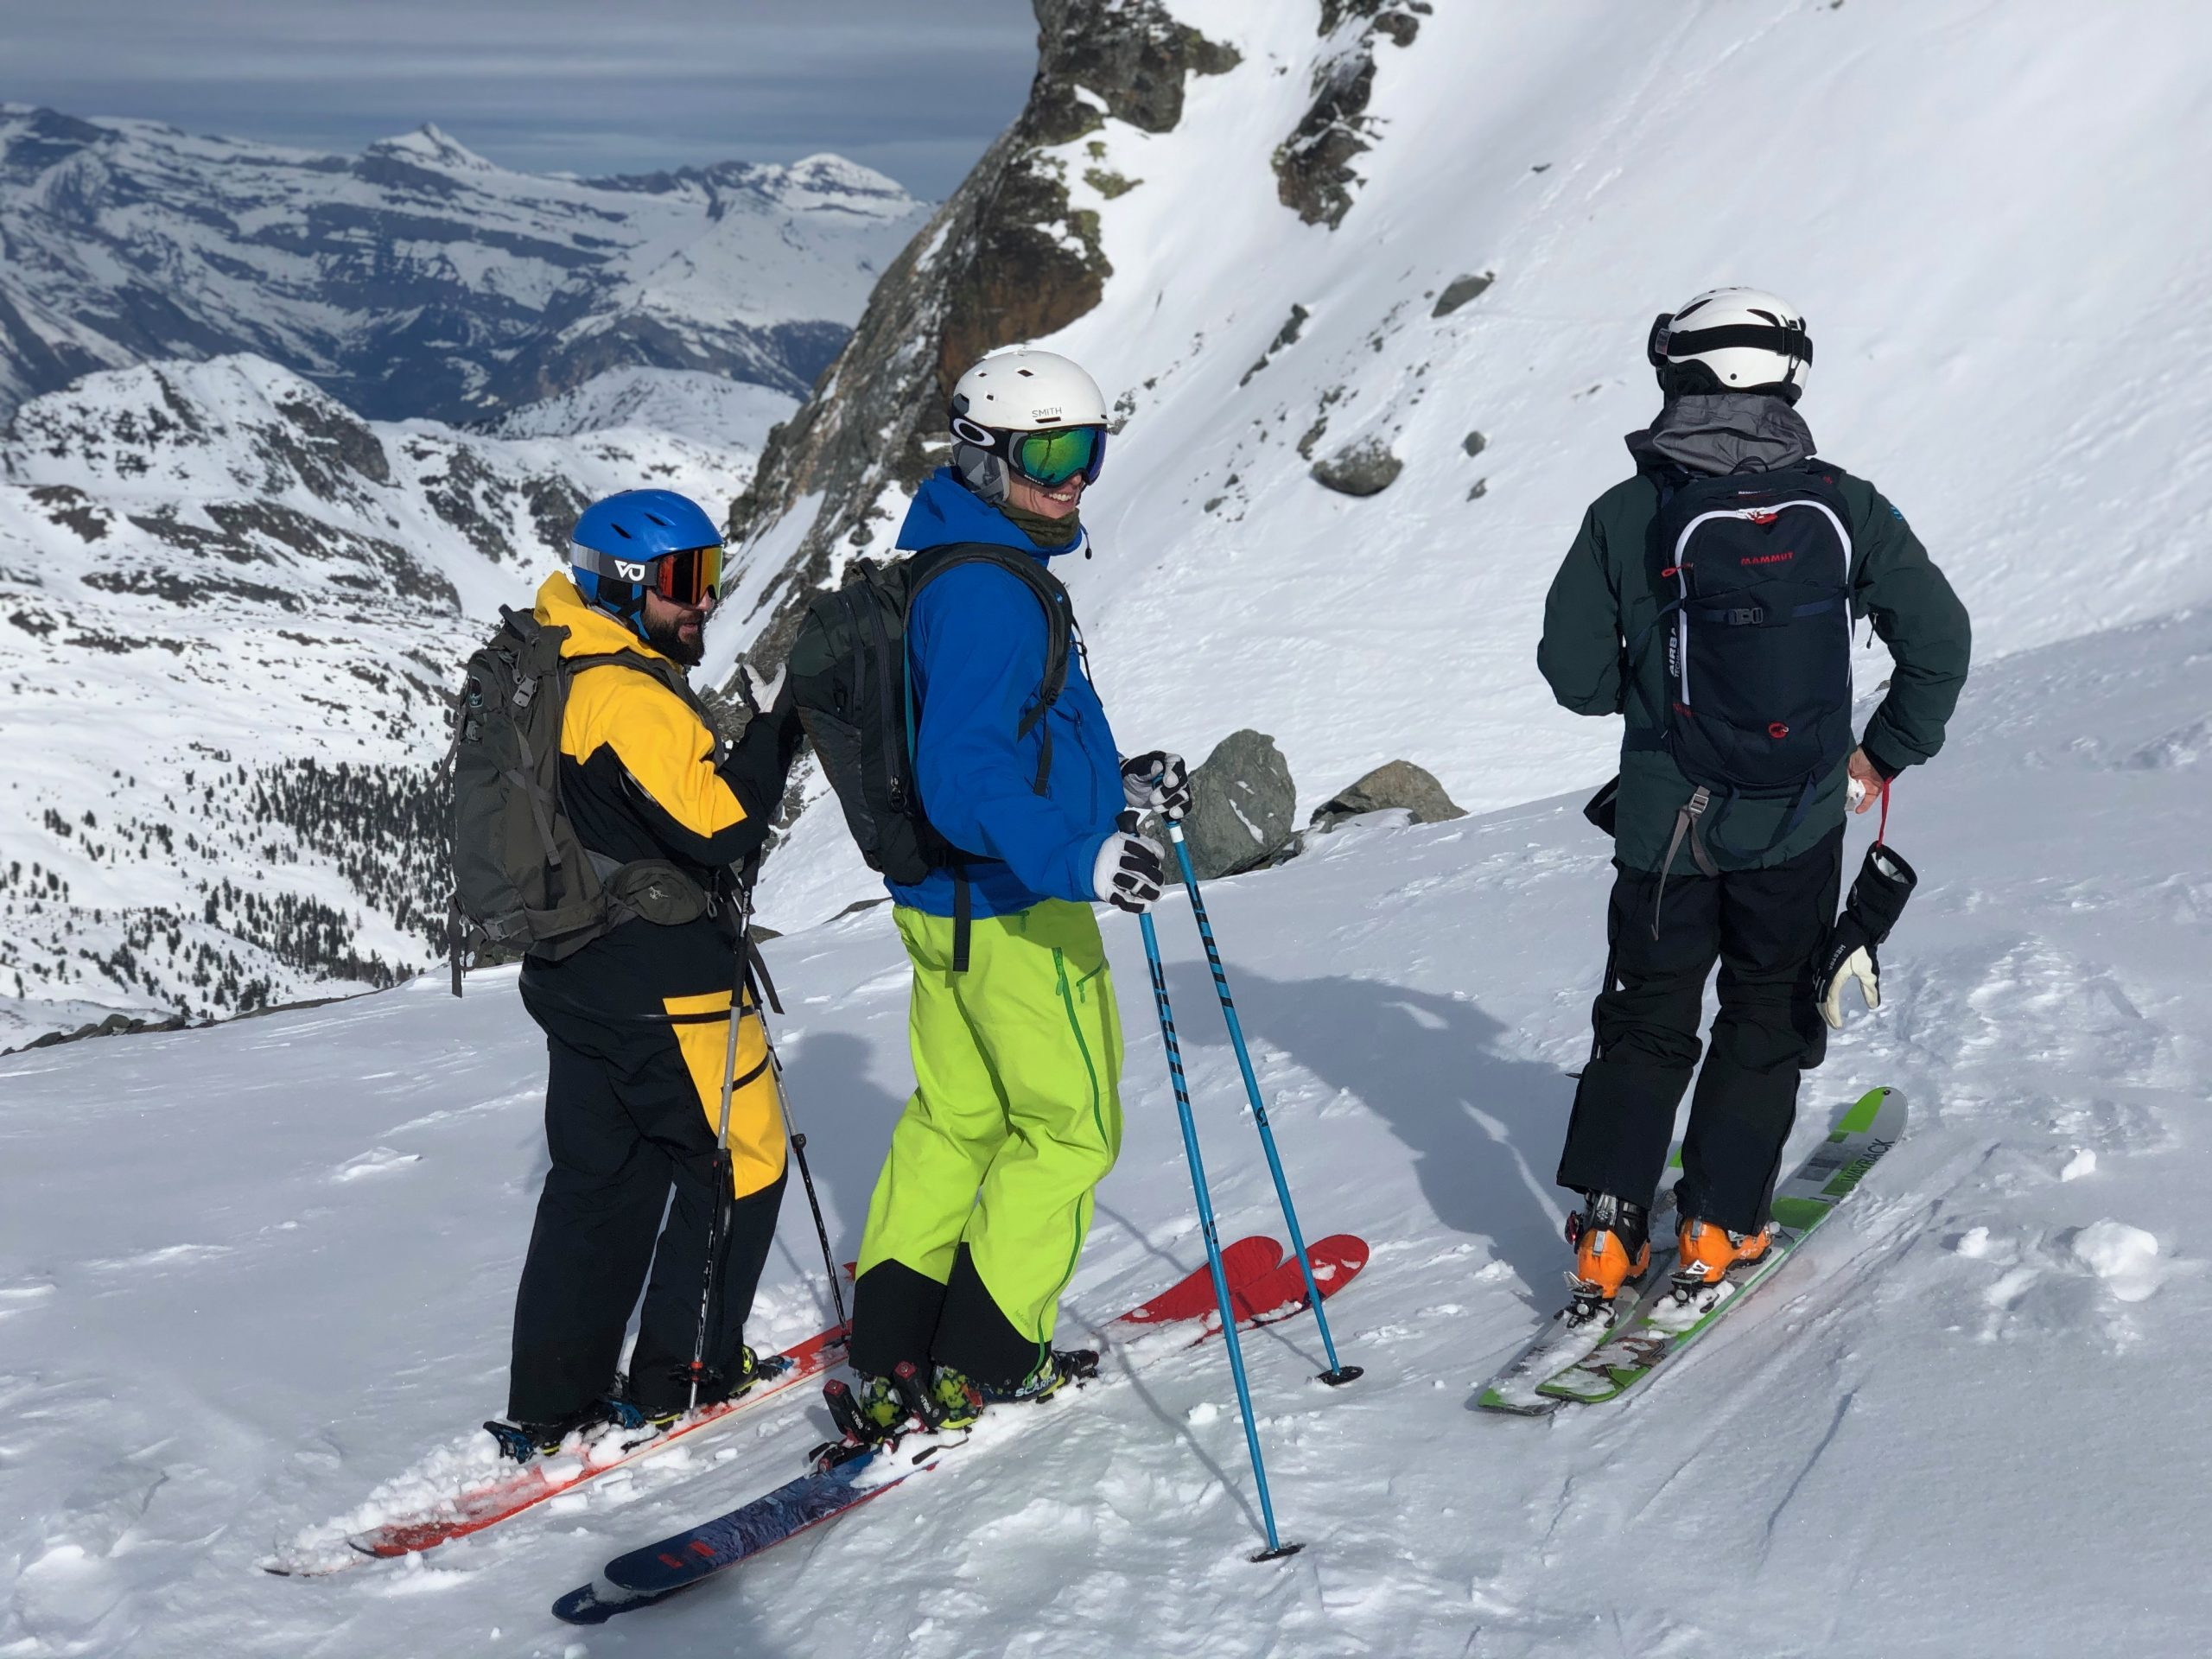 Off piste touring